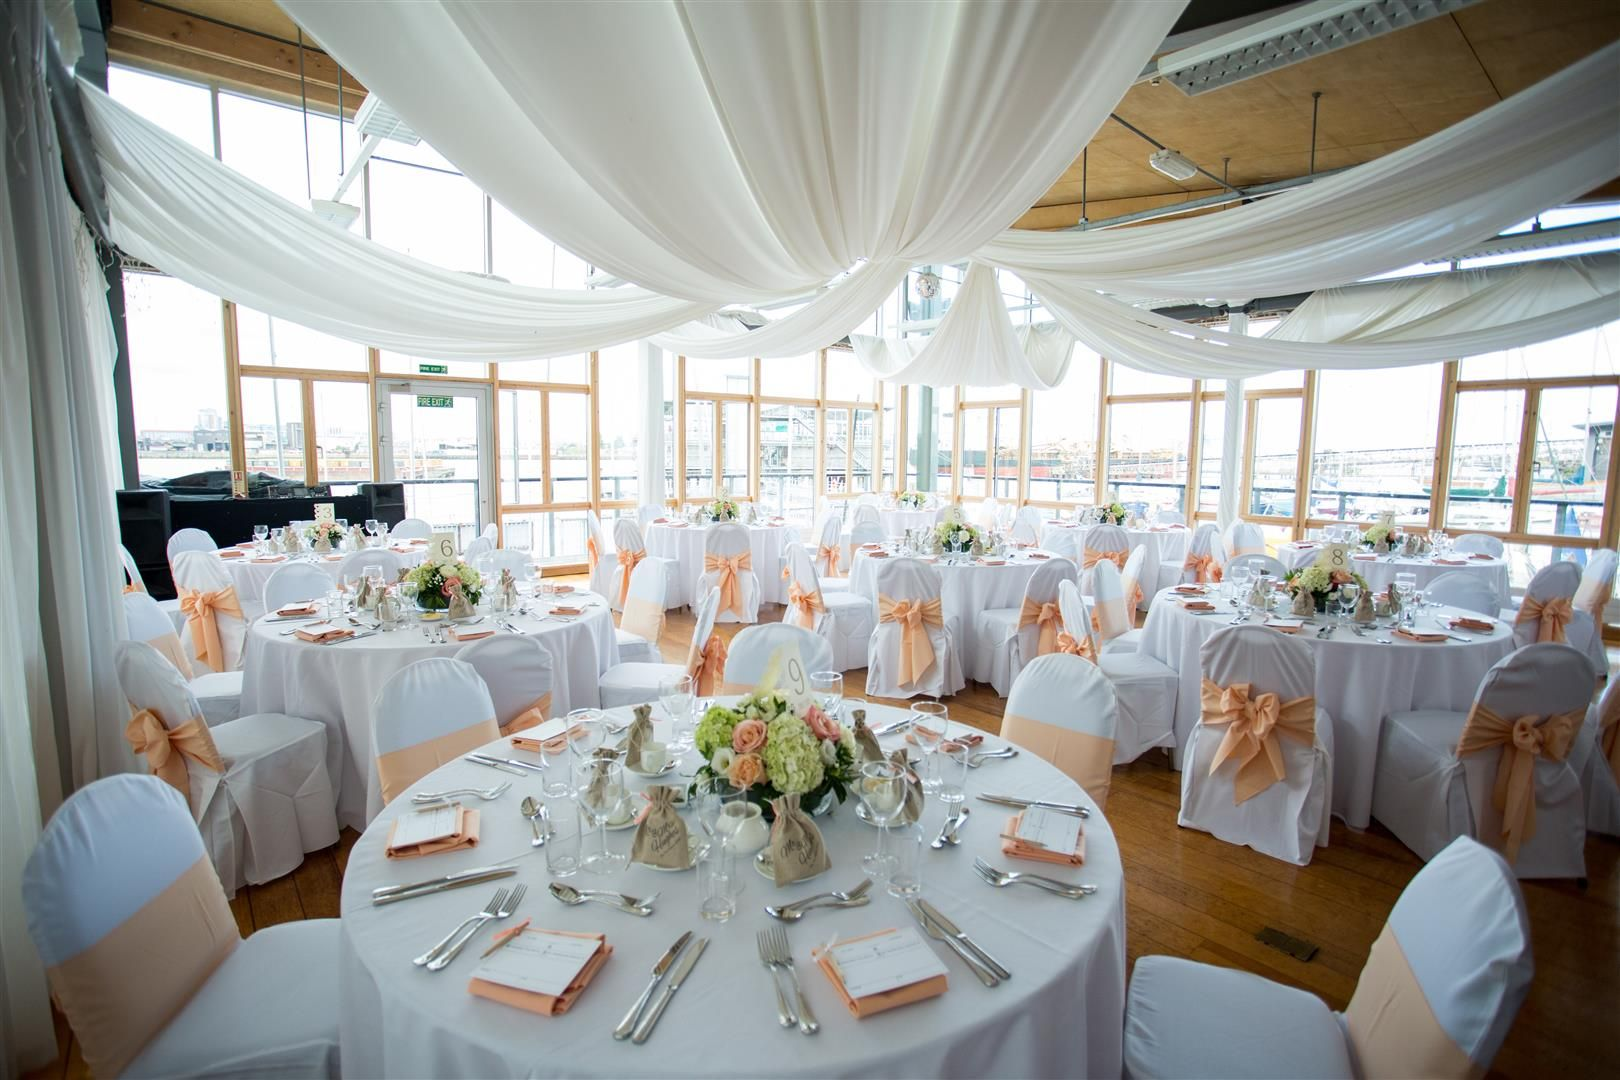 Classy And Elegant London Wedding Venue The River Rooms At